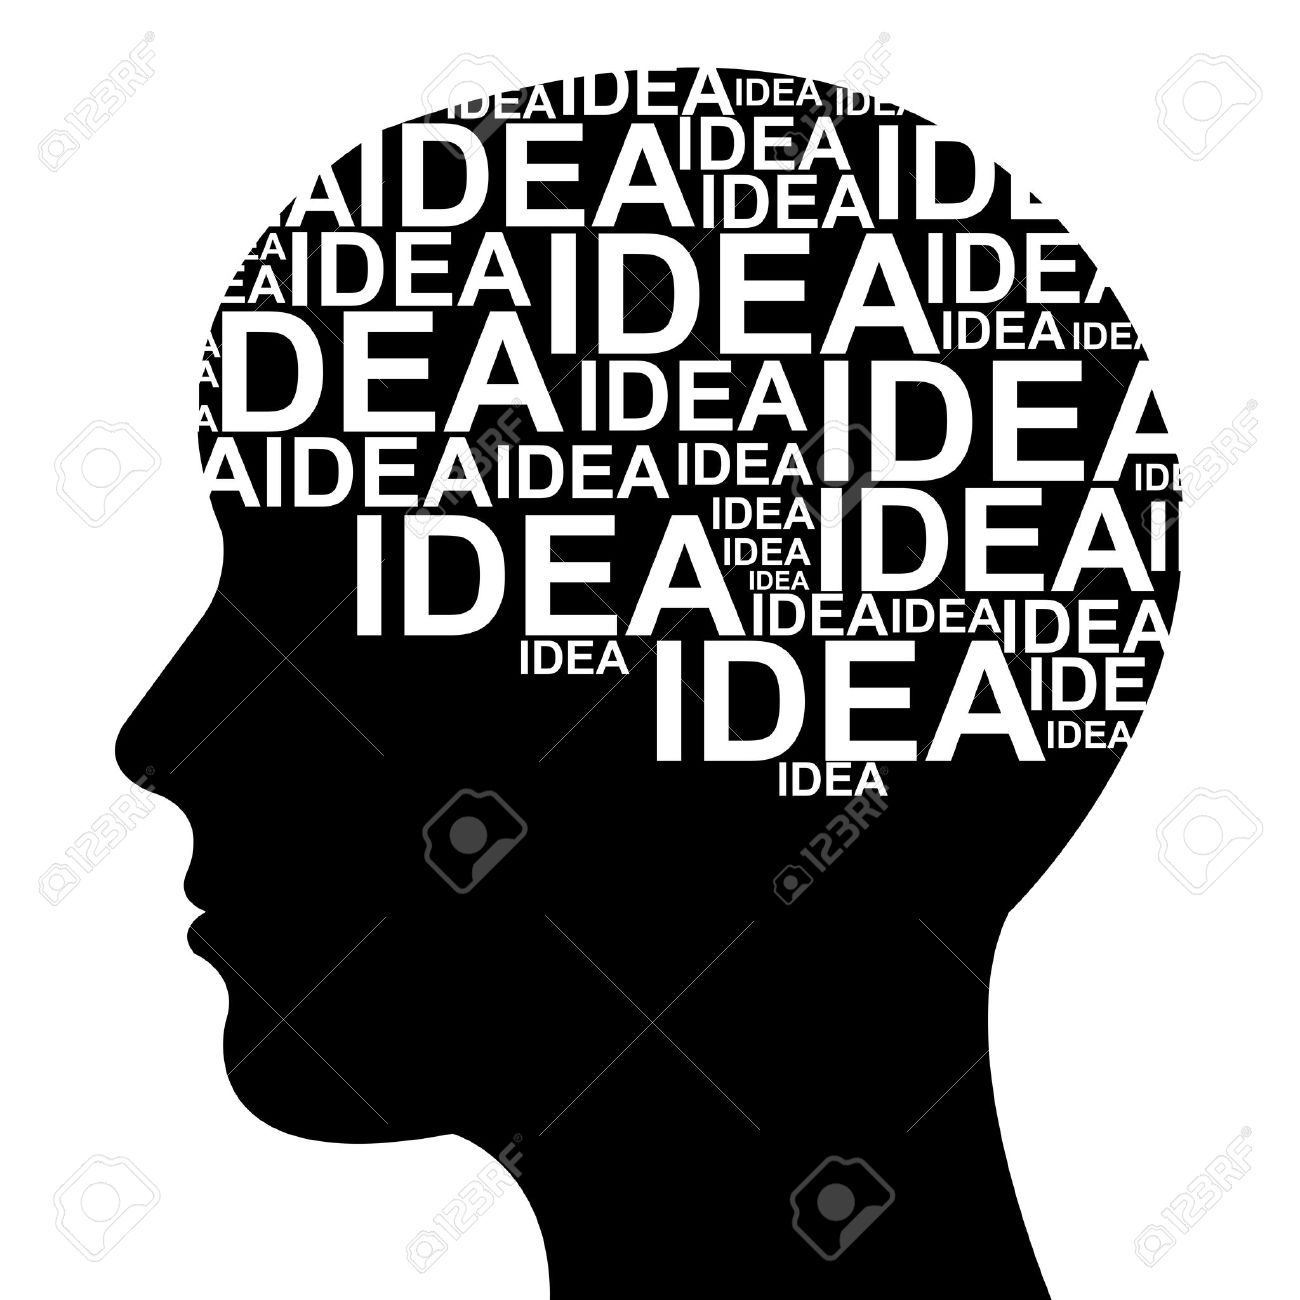 Idea Concept  in Brain Isolated on White Background Stock Photo - 13329001